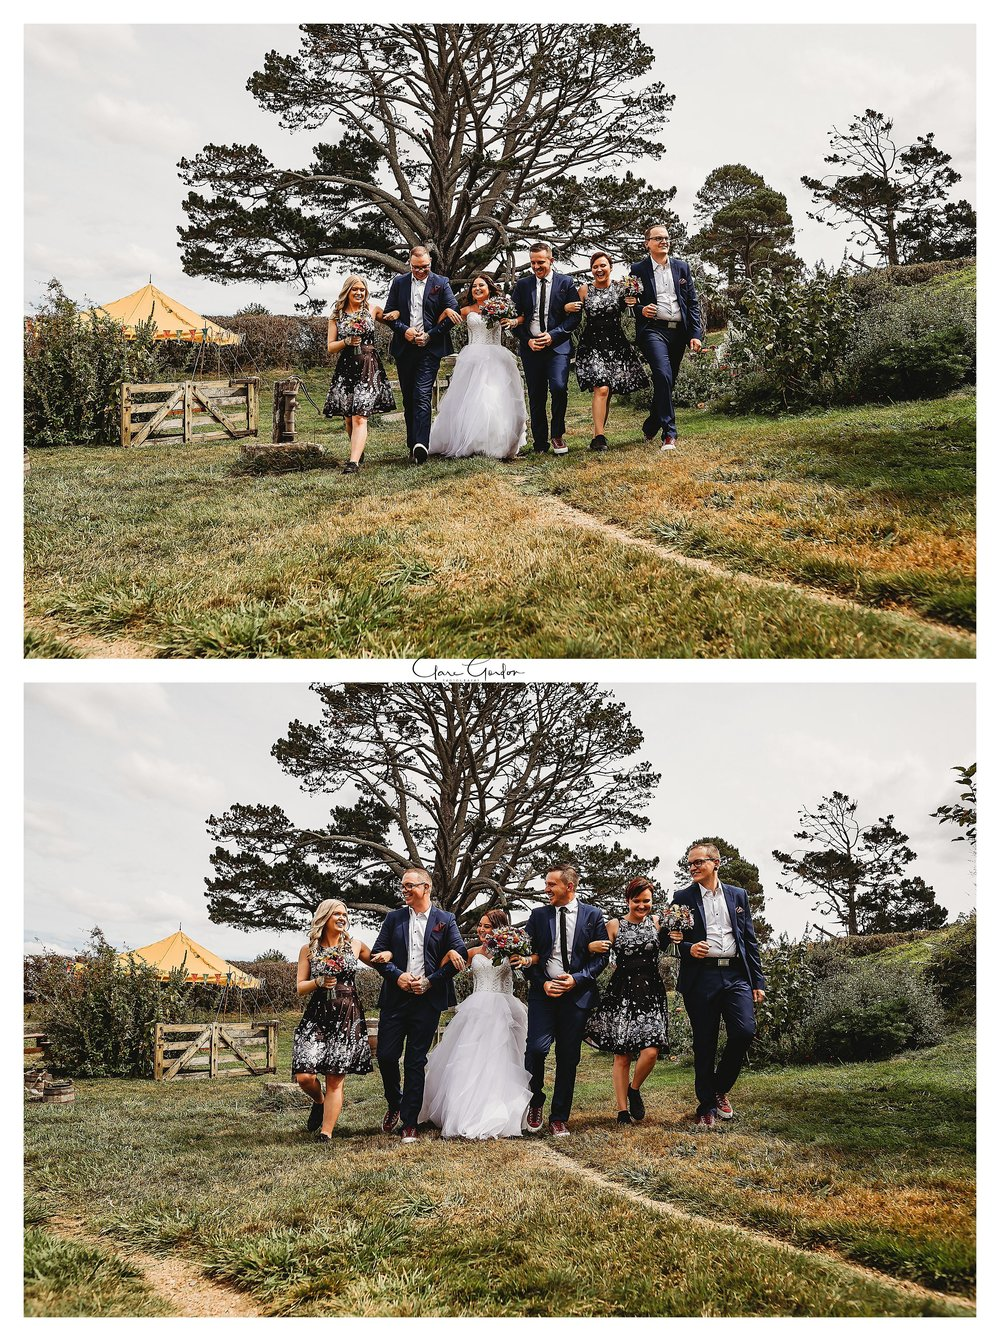 Hobbiton-bridal-party-wedding-photo